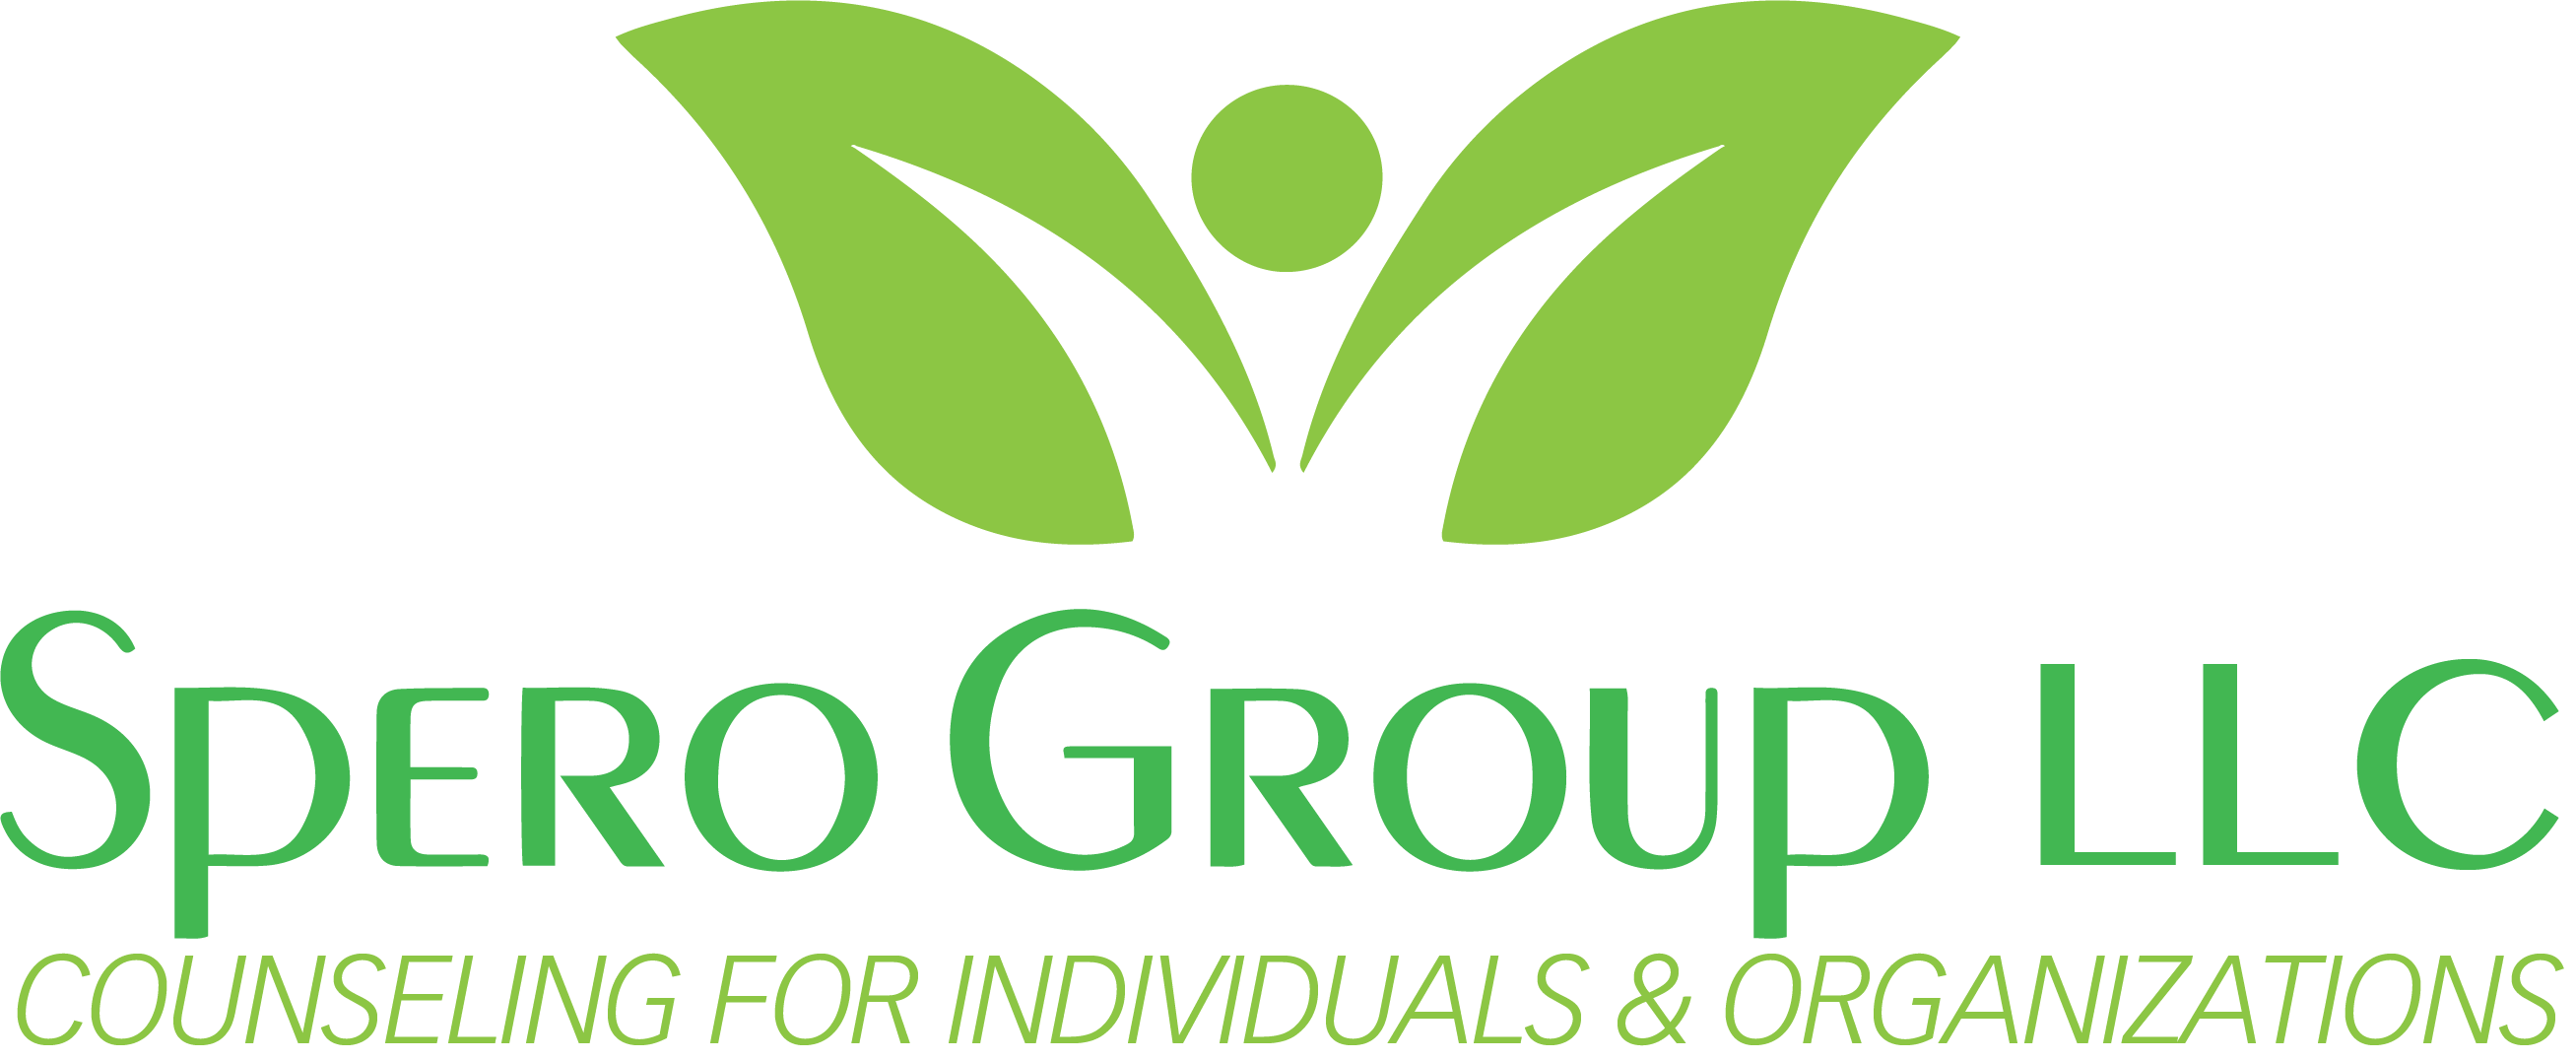 Spero Group LLC